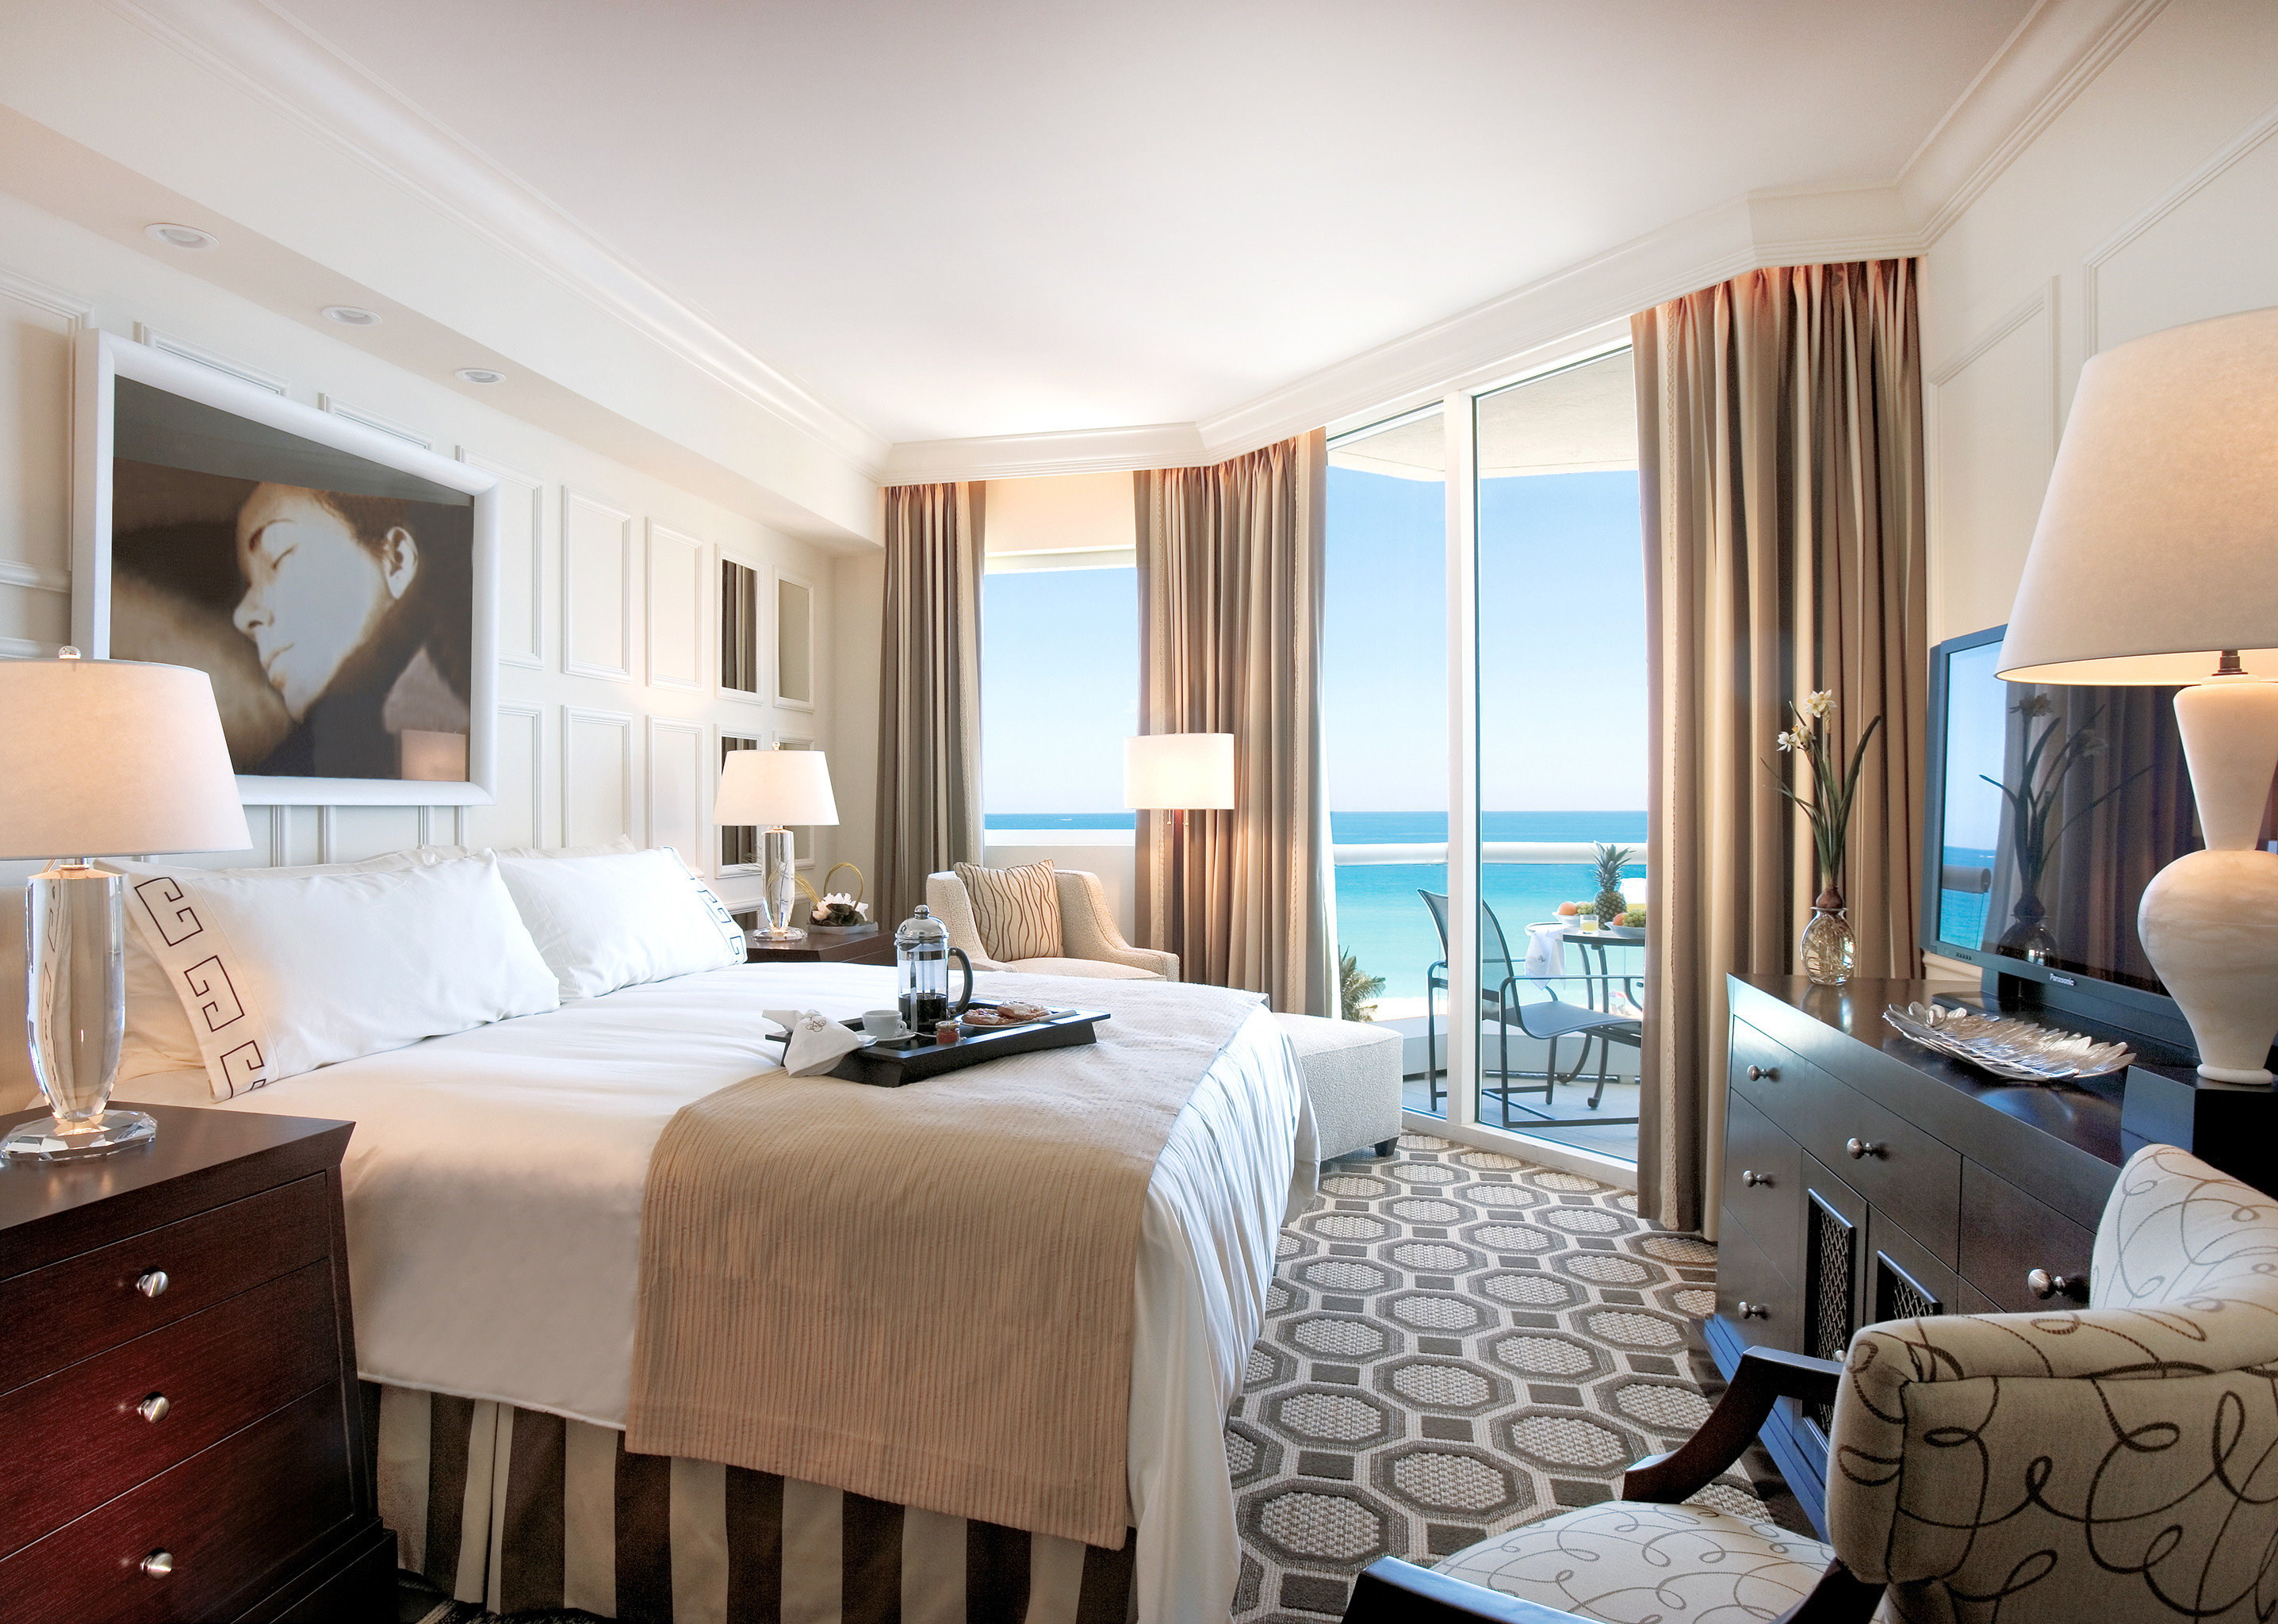 10 Best Luxury Hotels In Miami